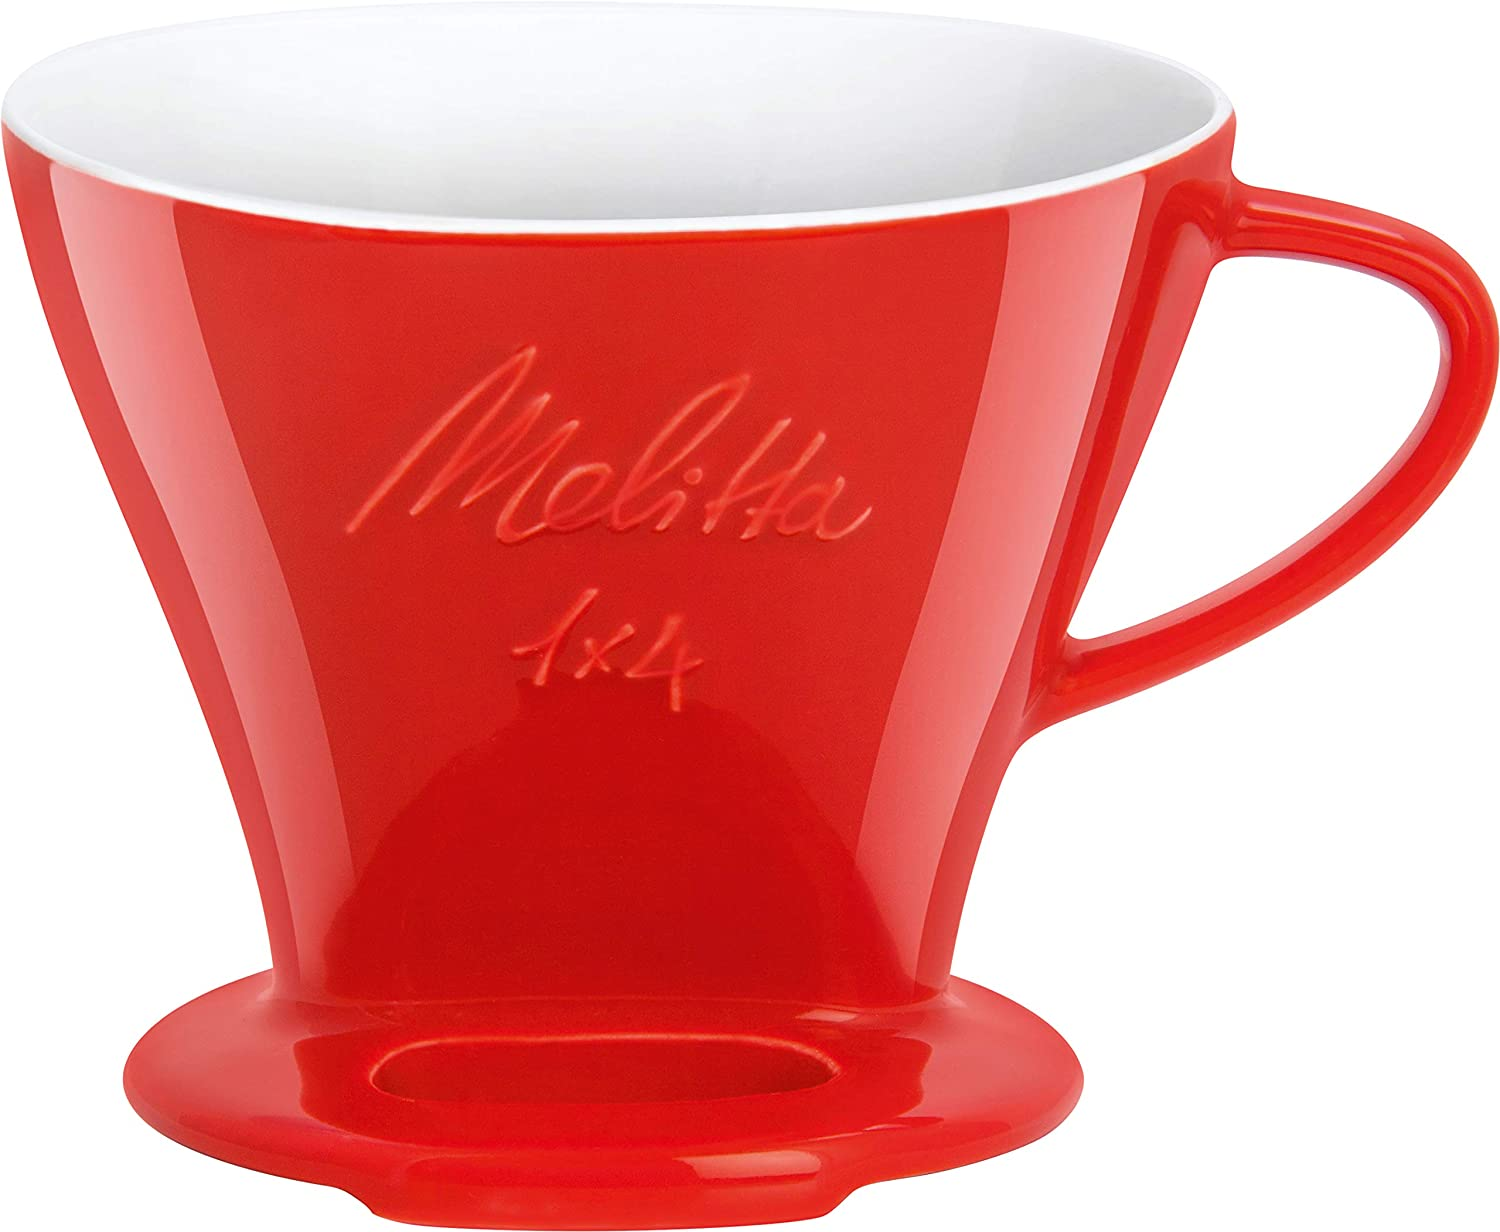 Melitta 6763135 Cone Porcelain Coffee Filter Size 1 x 4 Red